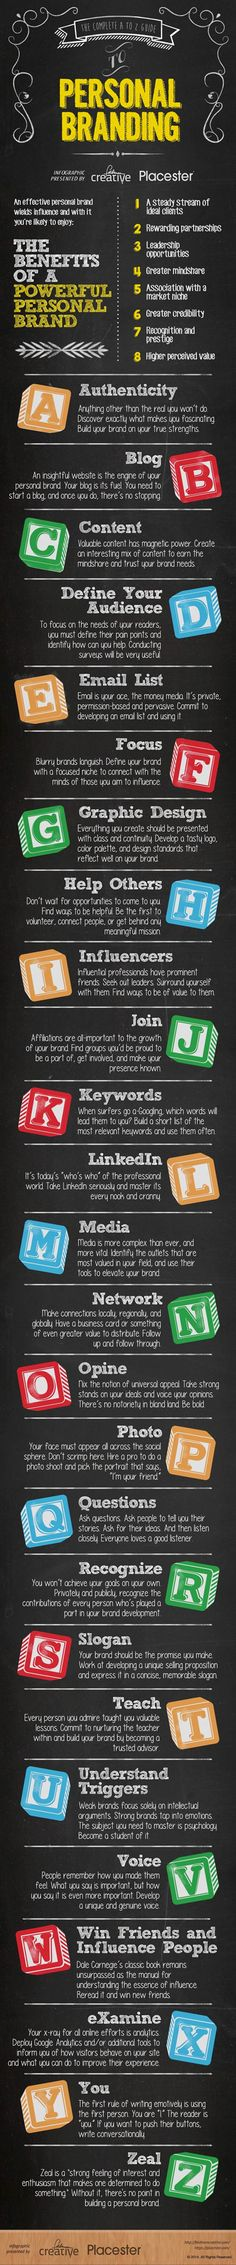 26 Reasons Why 'Personal Brand' Is NOT a Dirty Phrase (Infographic) | Inc.com